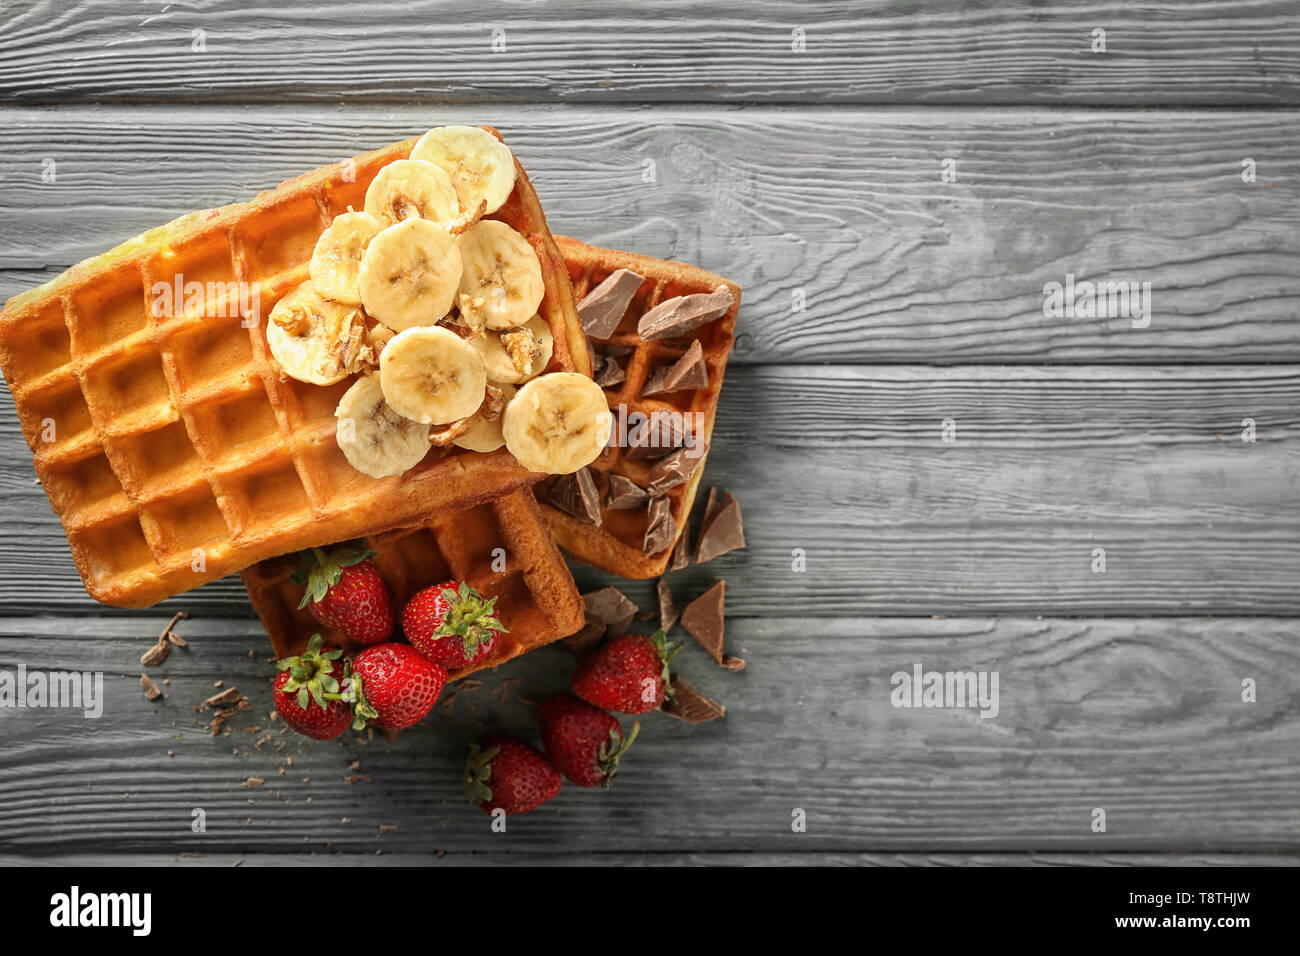 Delicious waffles with banana, berries and chocolate on wooden background, top view - Stock Image